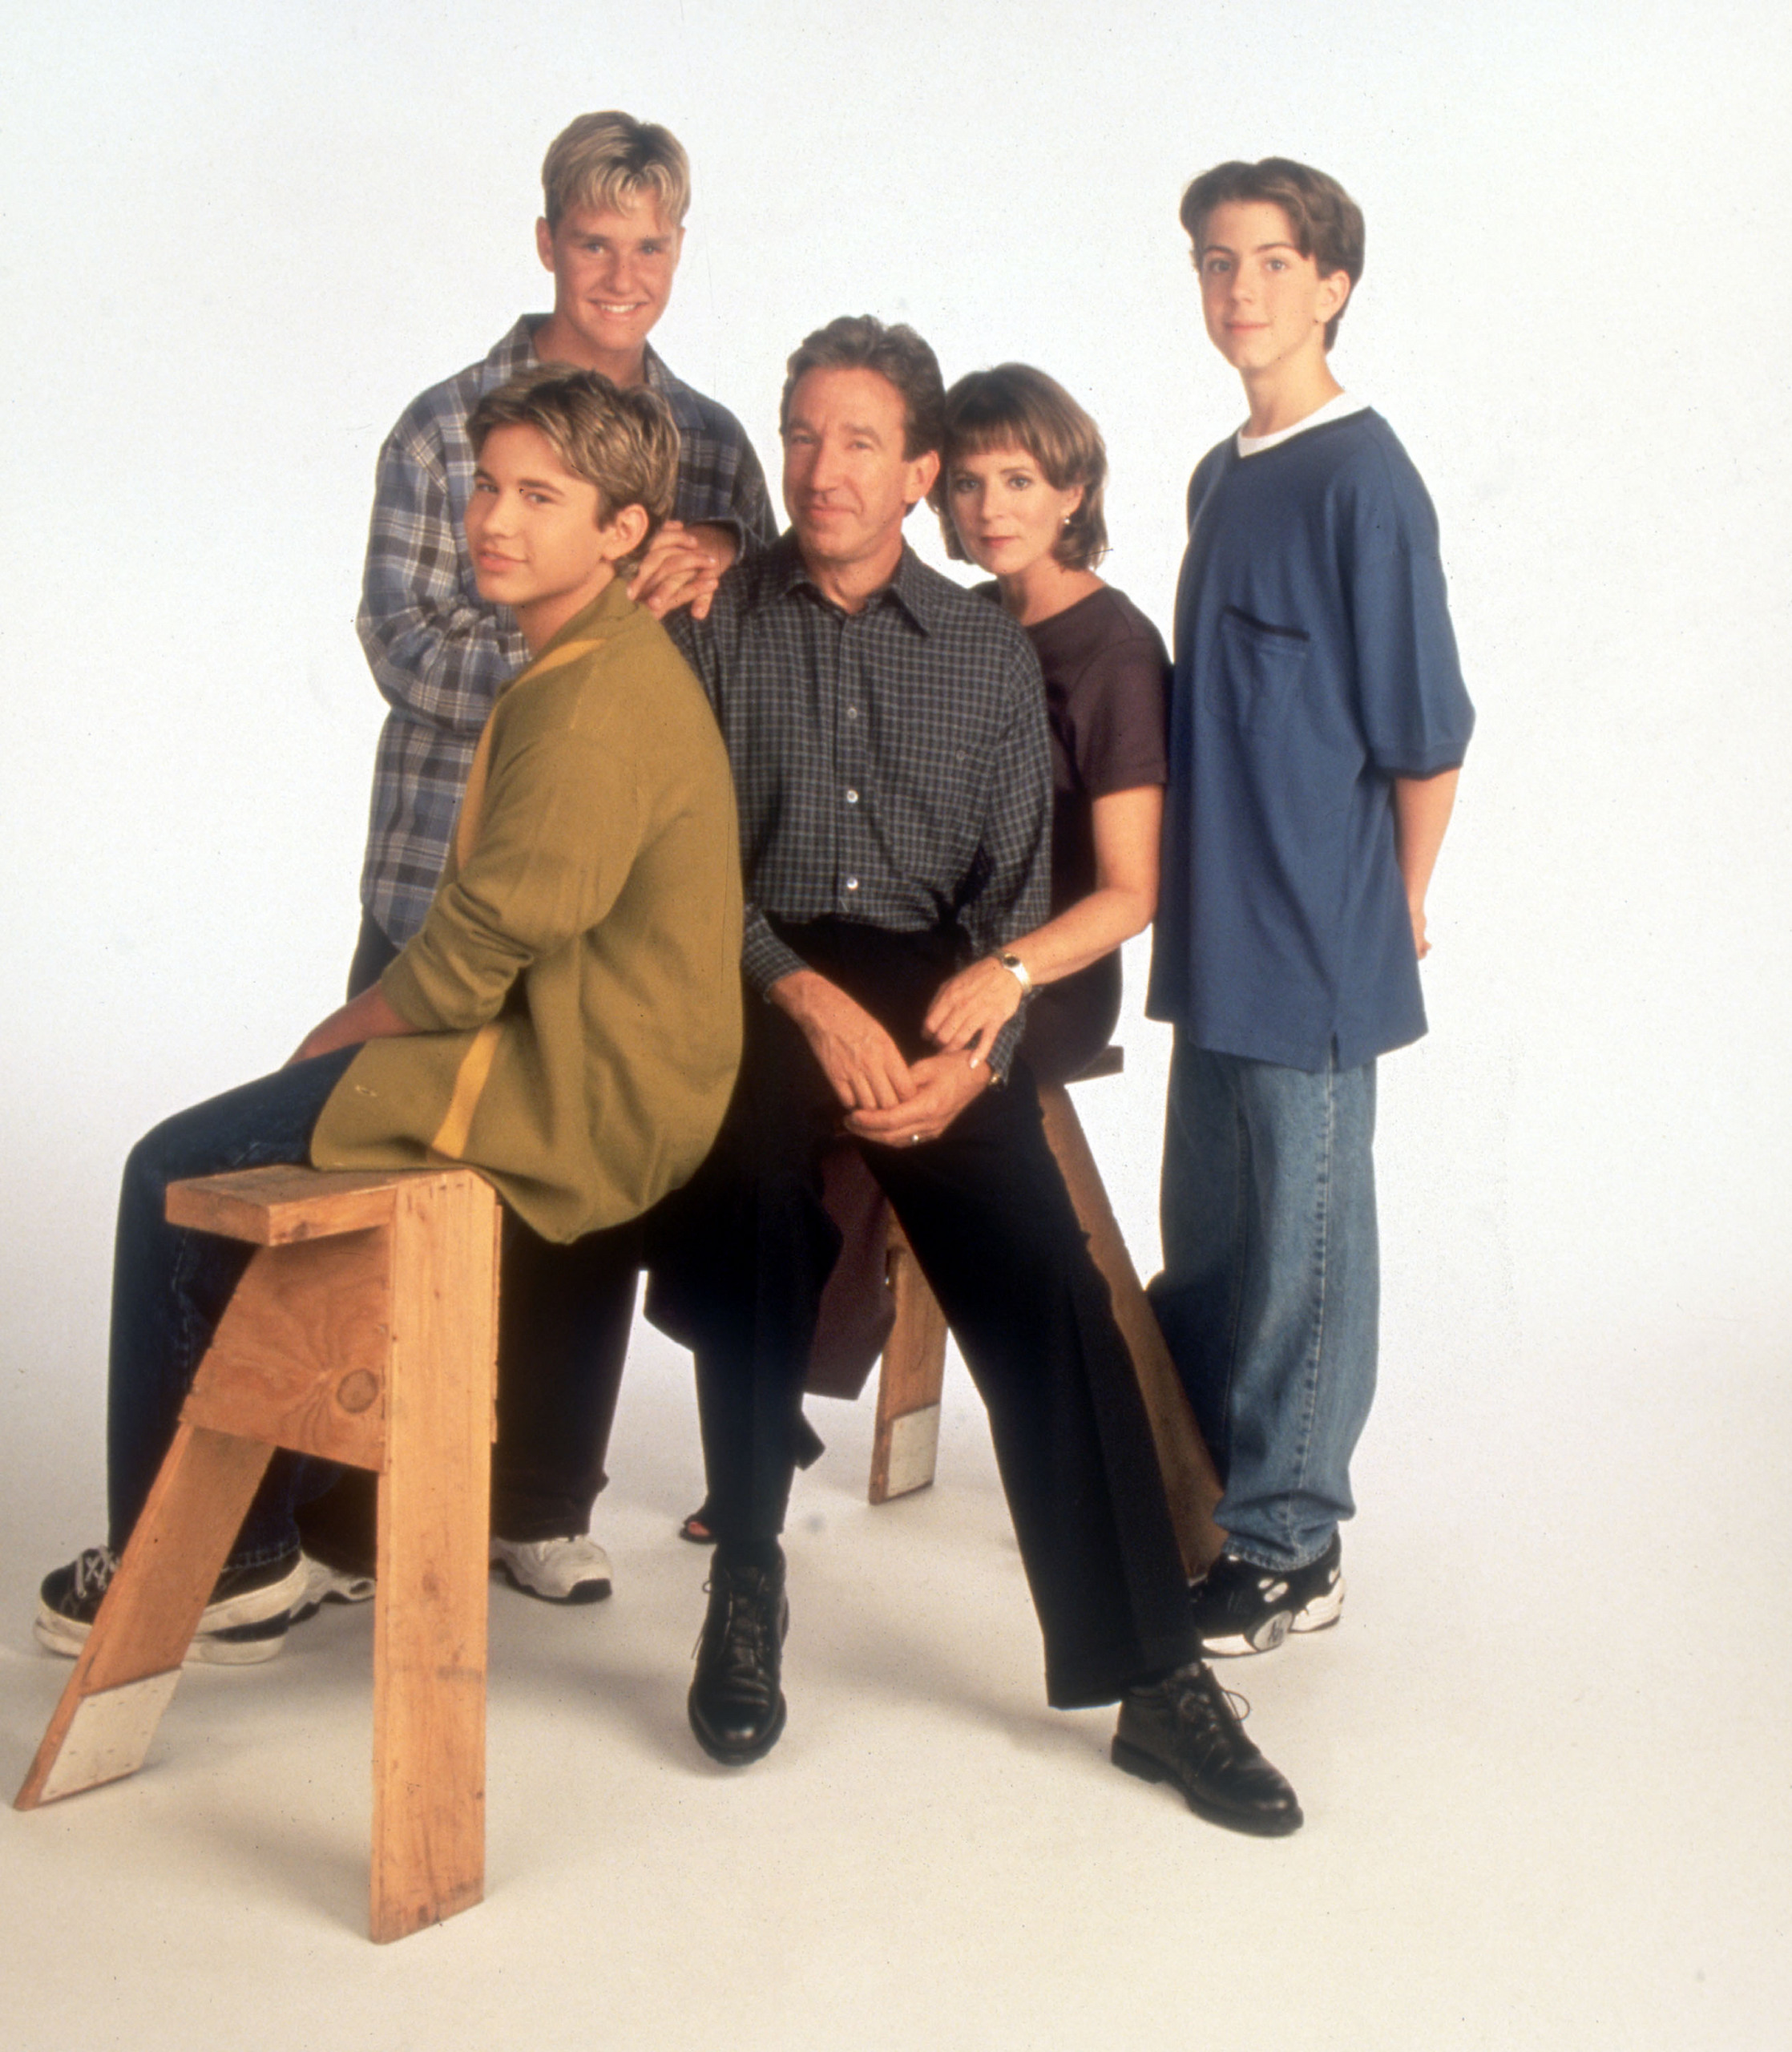 Remarkable Home Improvement TV Show 2236 x 2560 · 1021 kB · jpeg